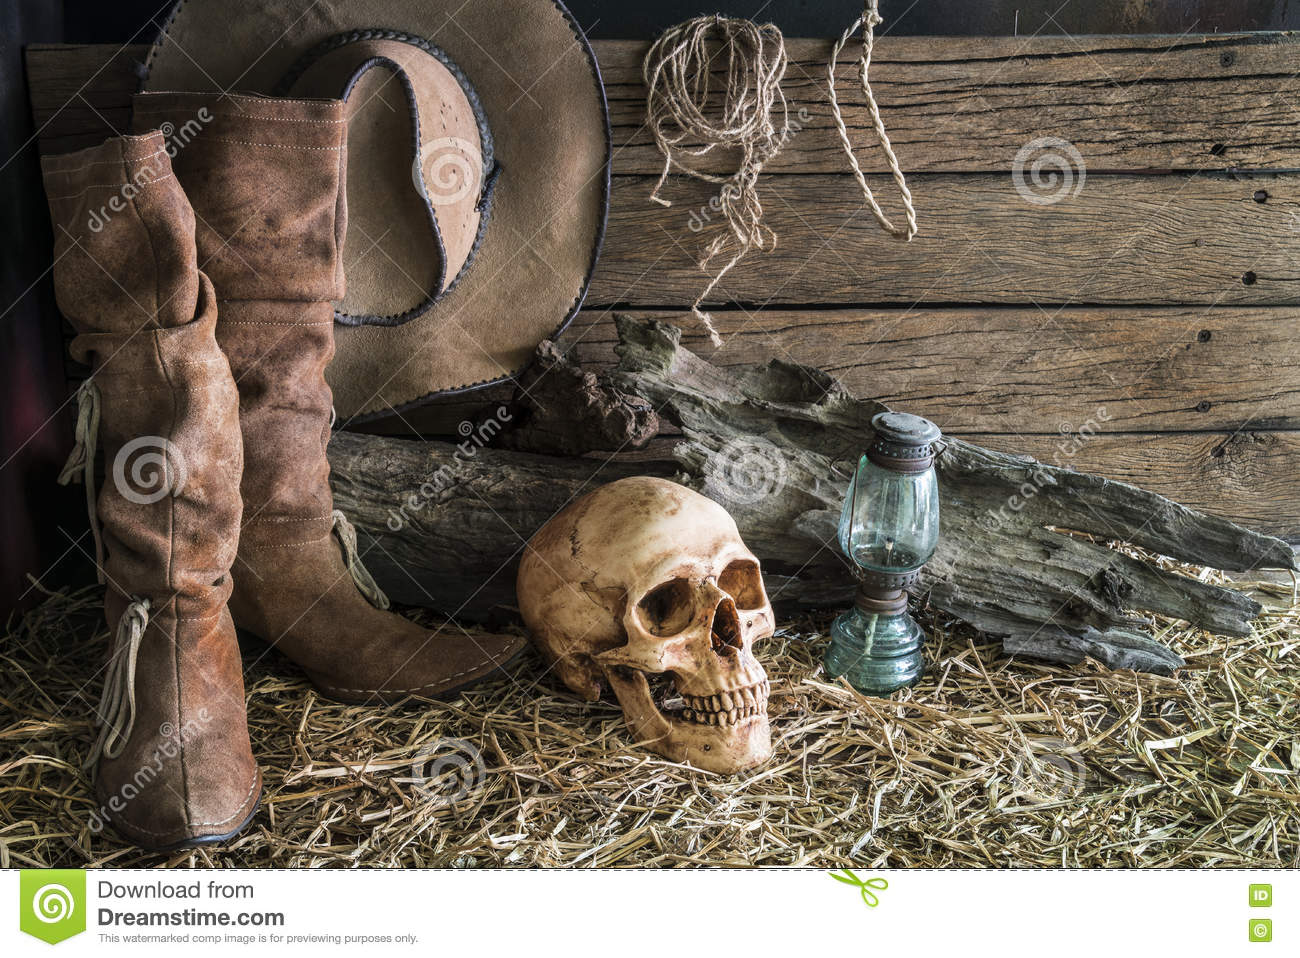 Human skull and cowboy boots in barn background